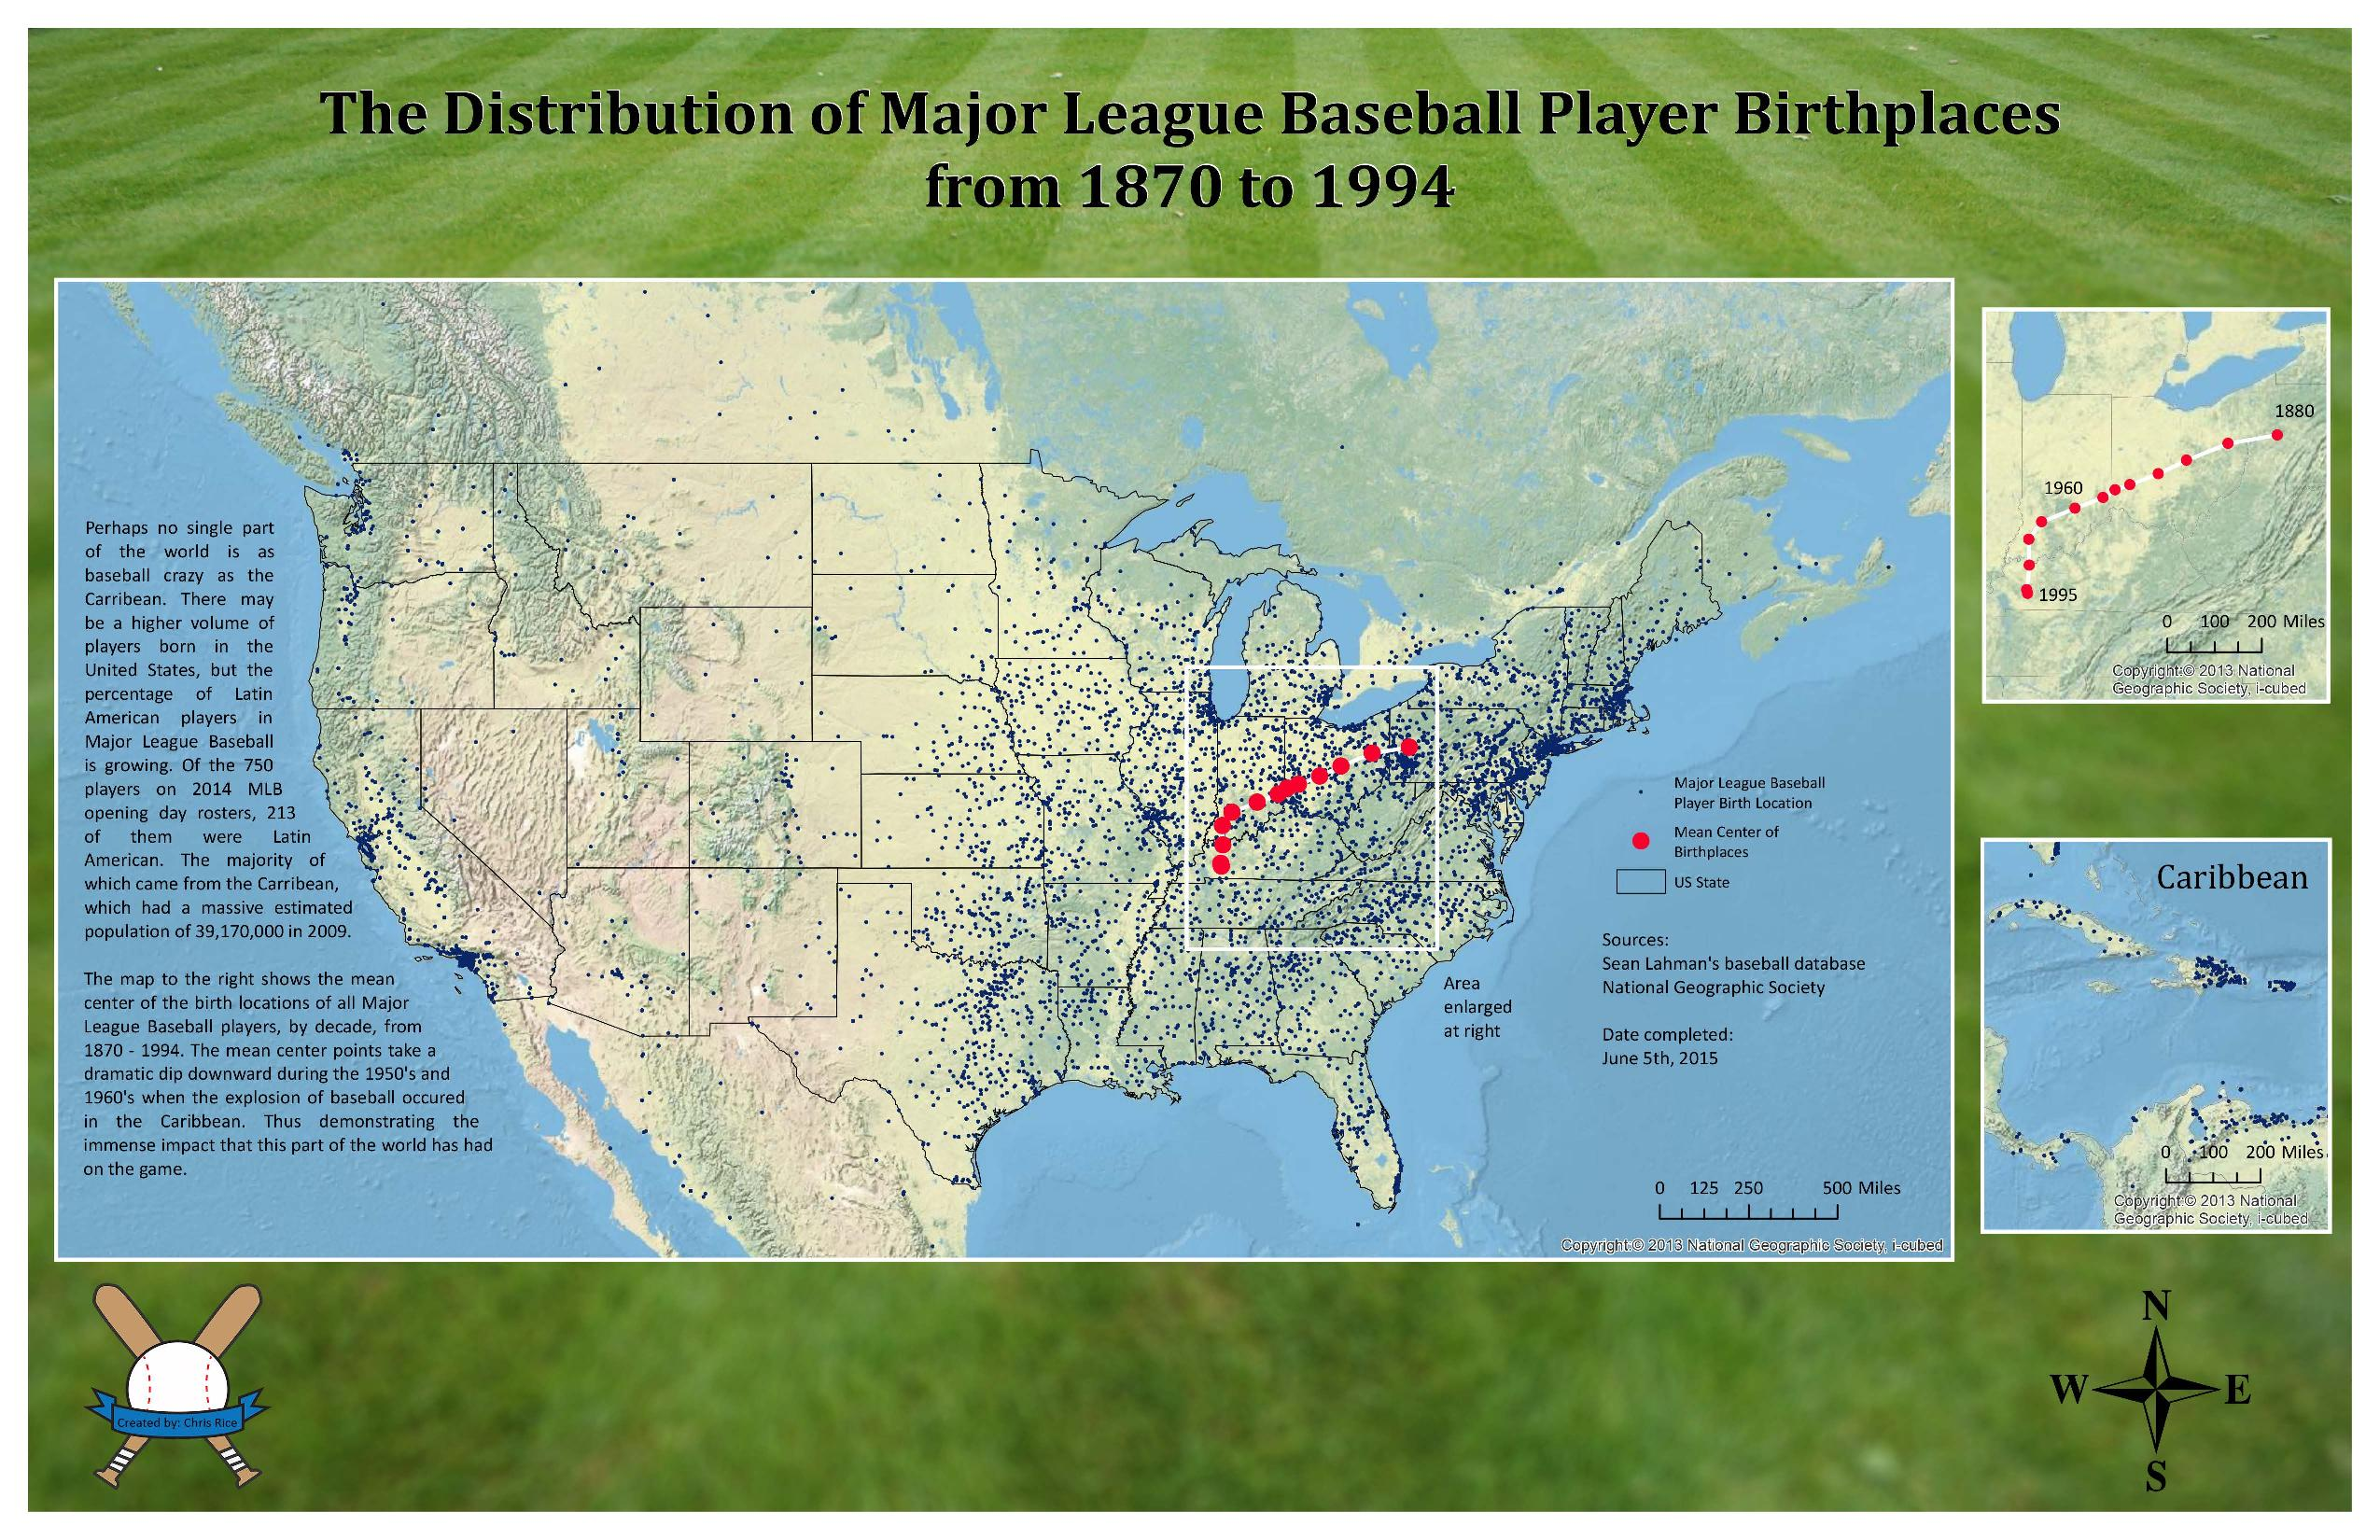 Map contest 2015 chris rice distribution of mlb player birthplaces gumiabroncs Gallery